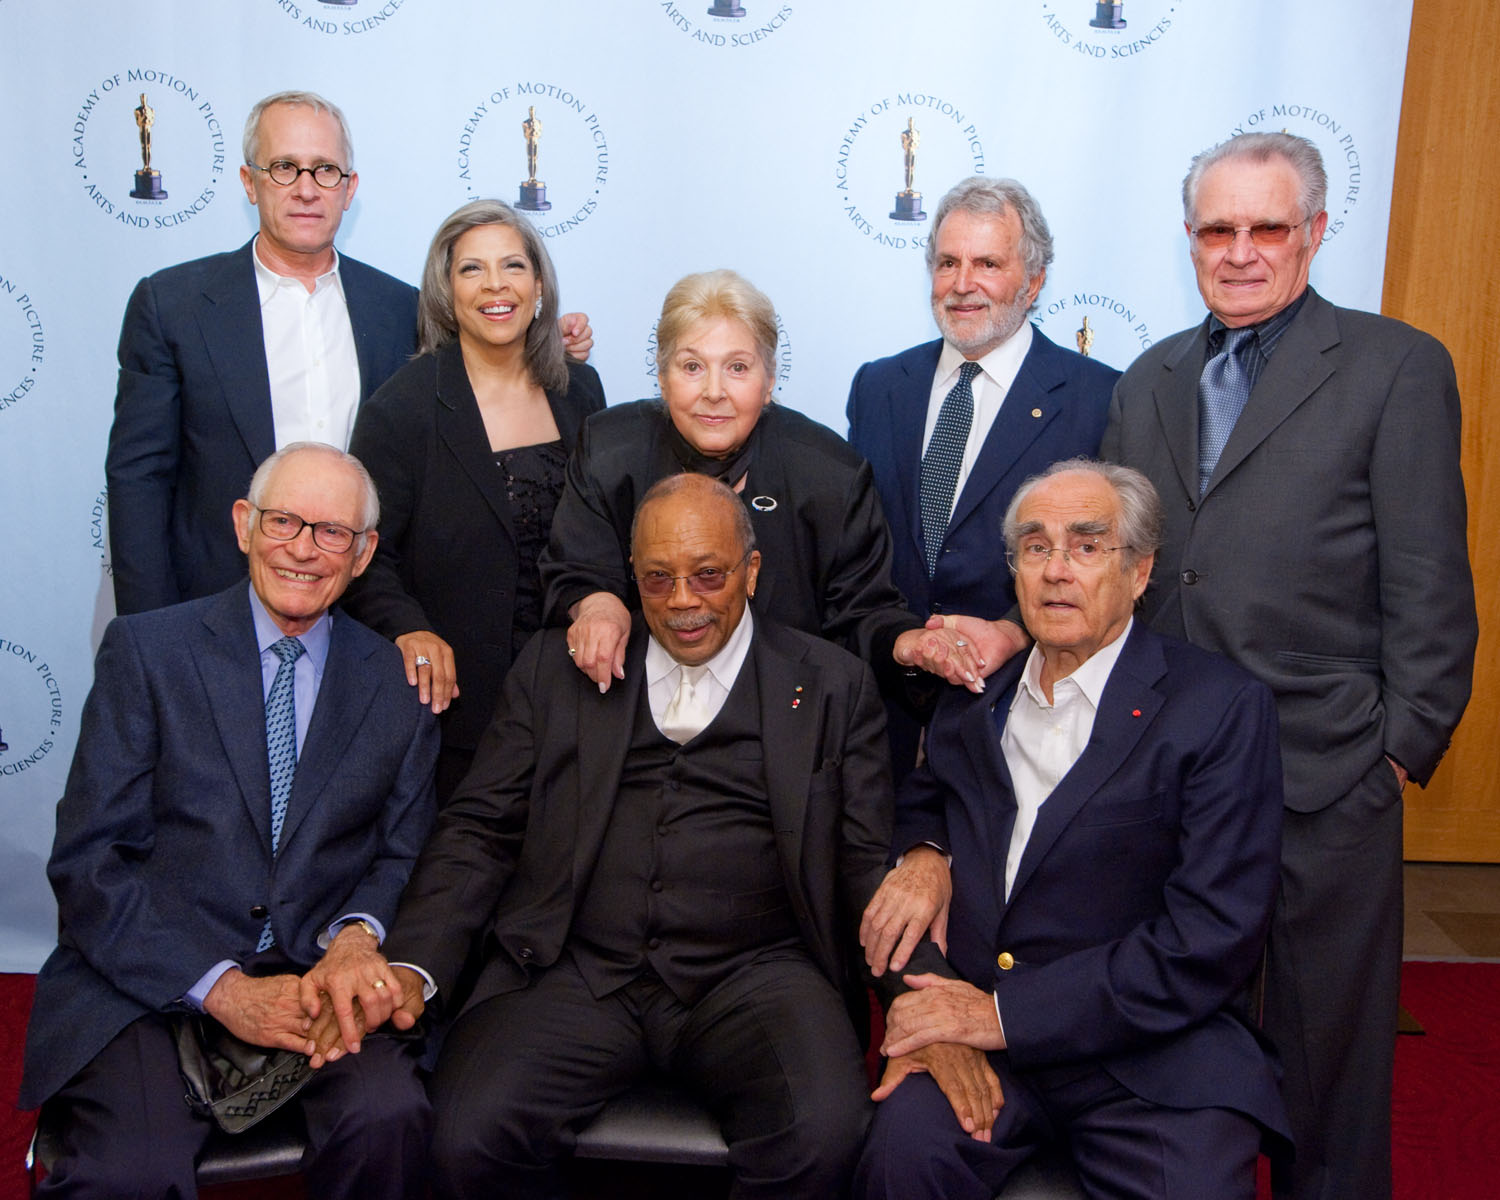 Alan Bergman, Patti Austin, Marilyn Bergman, Quincy Jones, Michel Legrand